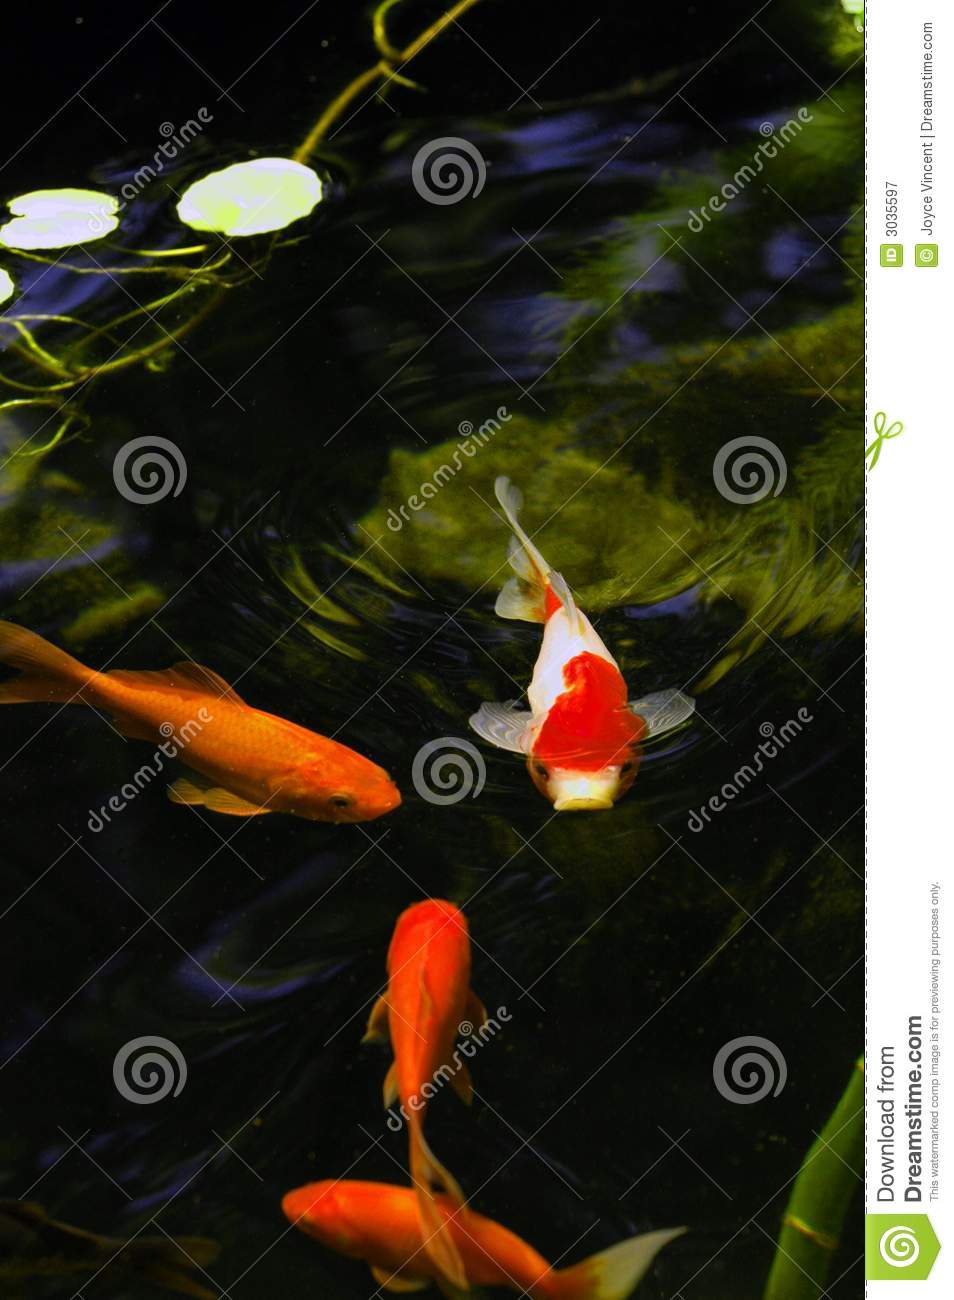 Outdoor koi fish pond stock image image of pond swimming for Koi pond price